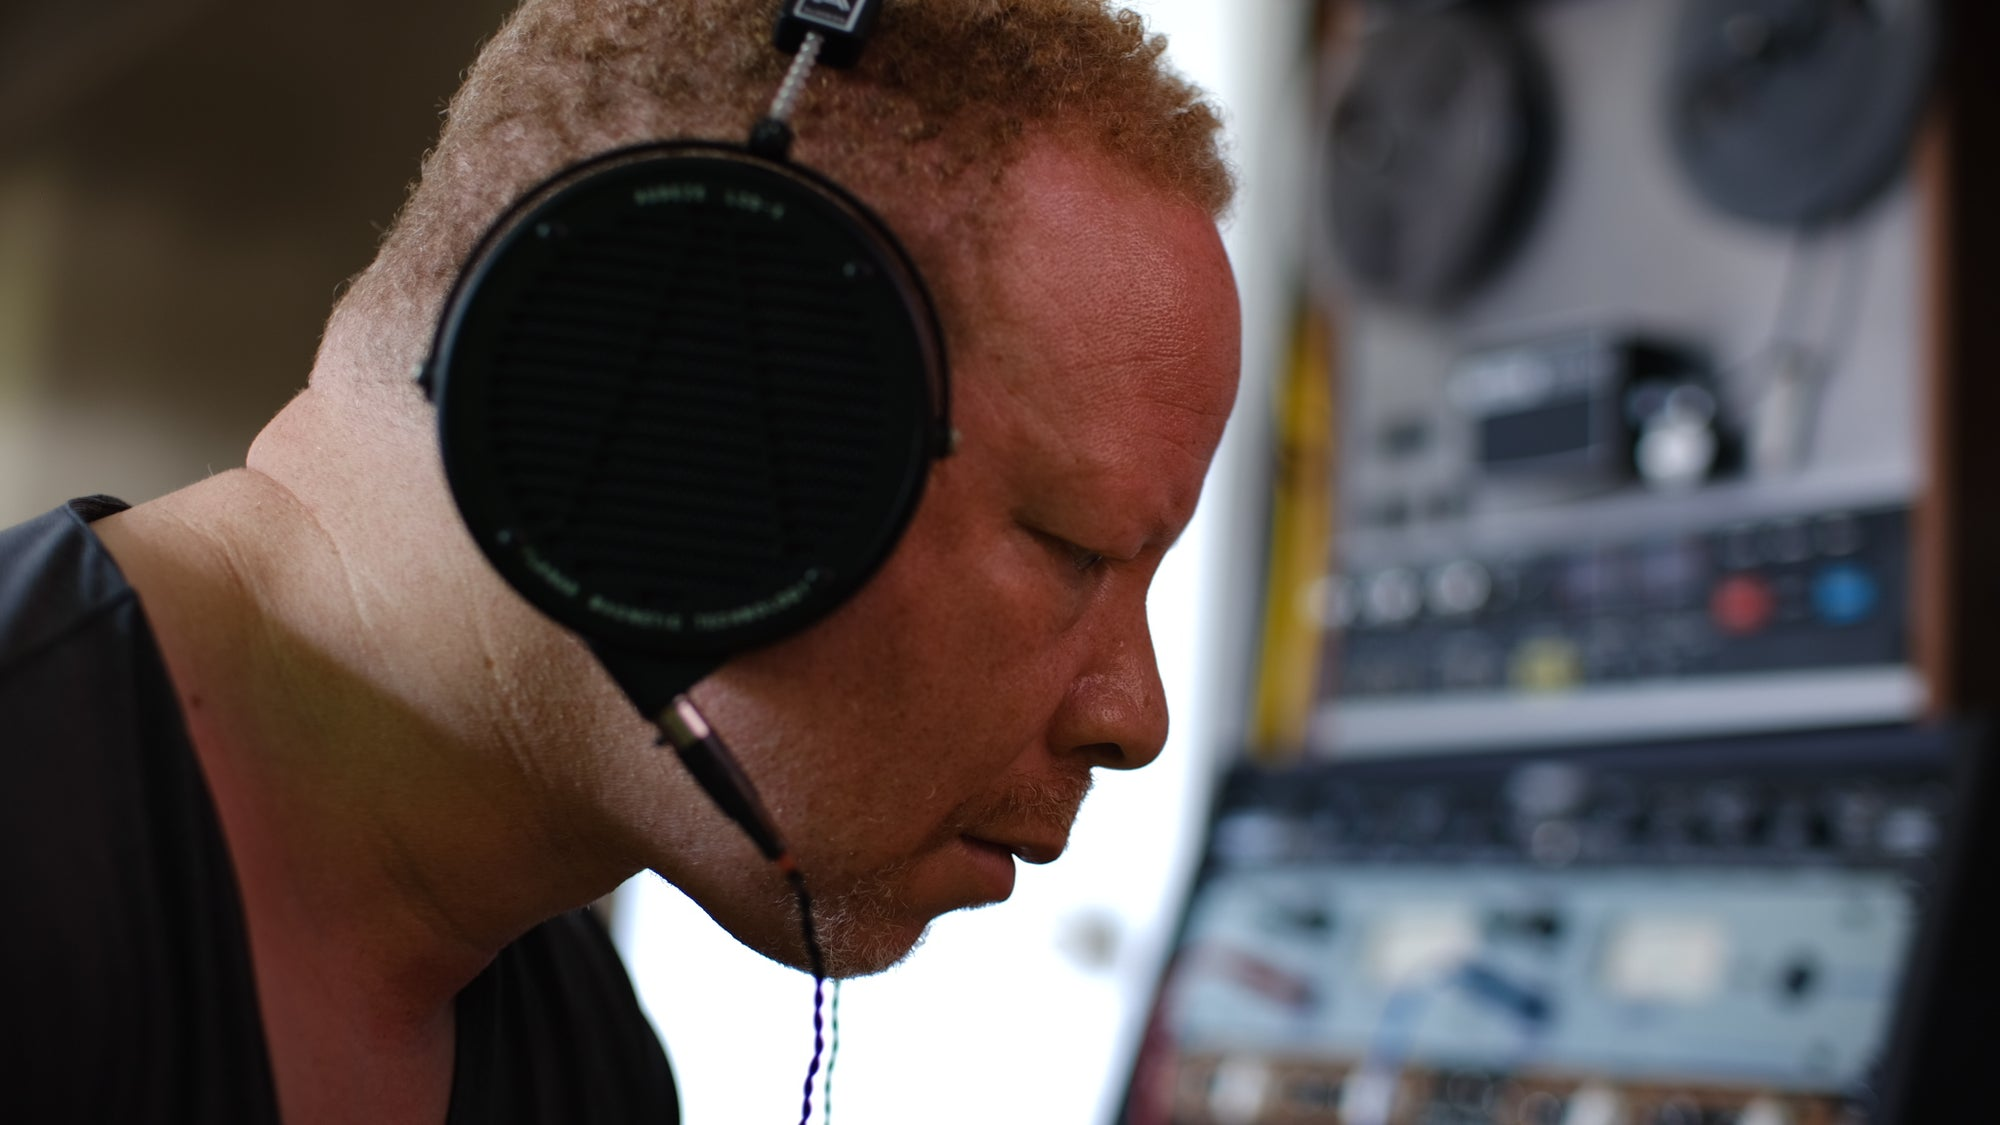 Audeze interviews pianist, composer and electronic musician Craig Taborn